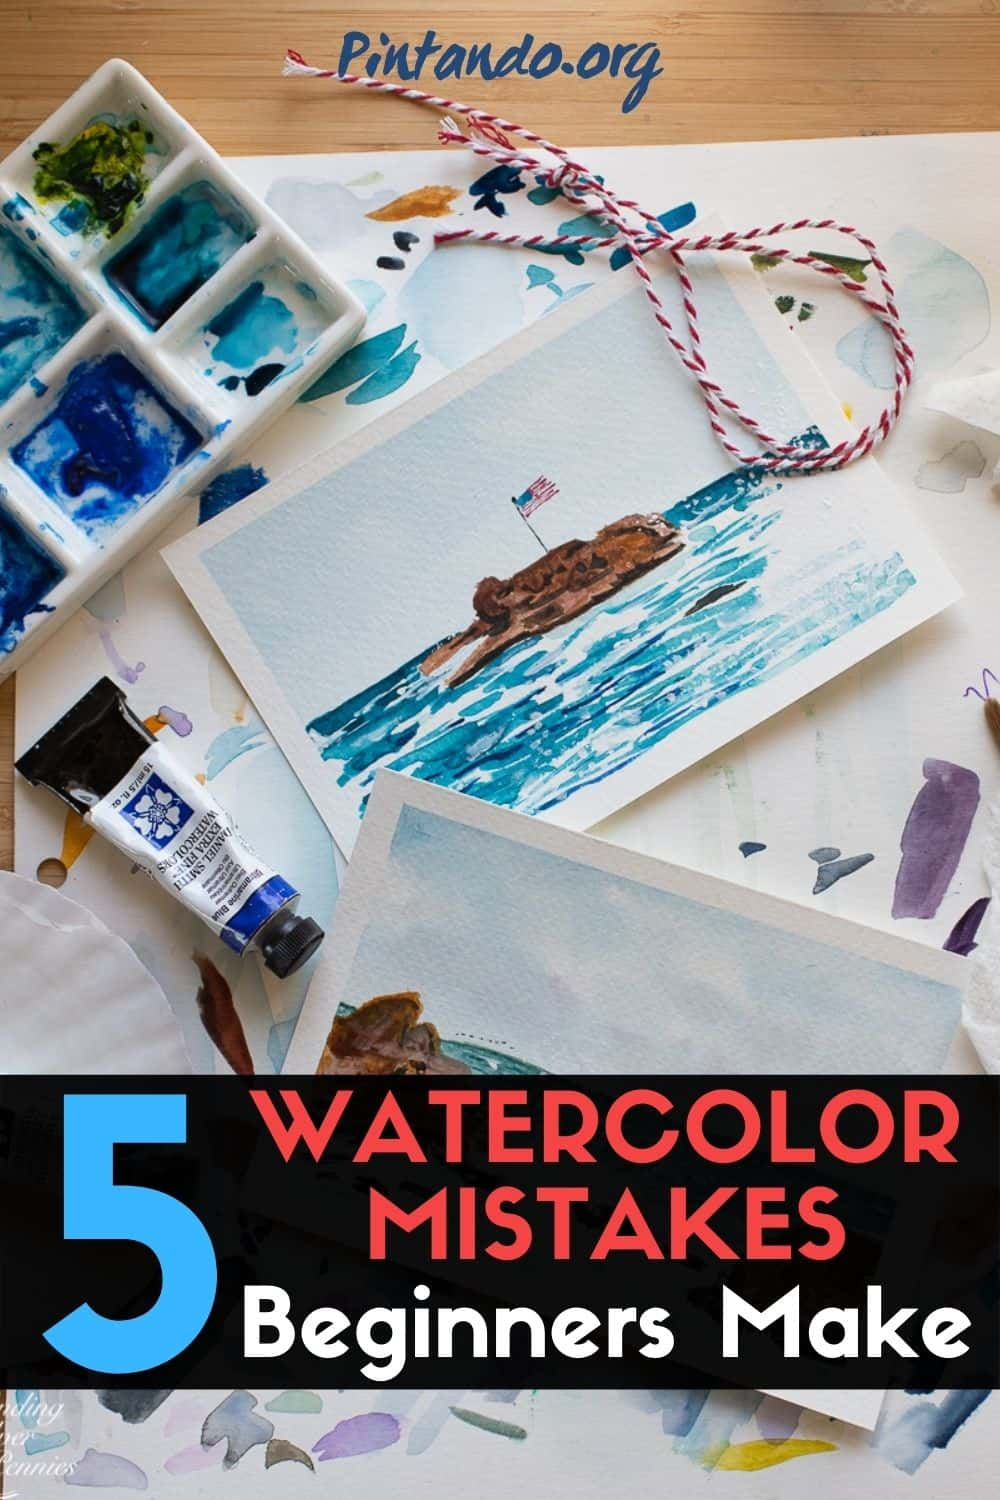 TOP 5 WATERCOLOR MISTAKES Beginners Make (1)-min